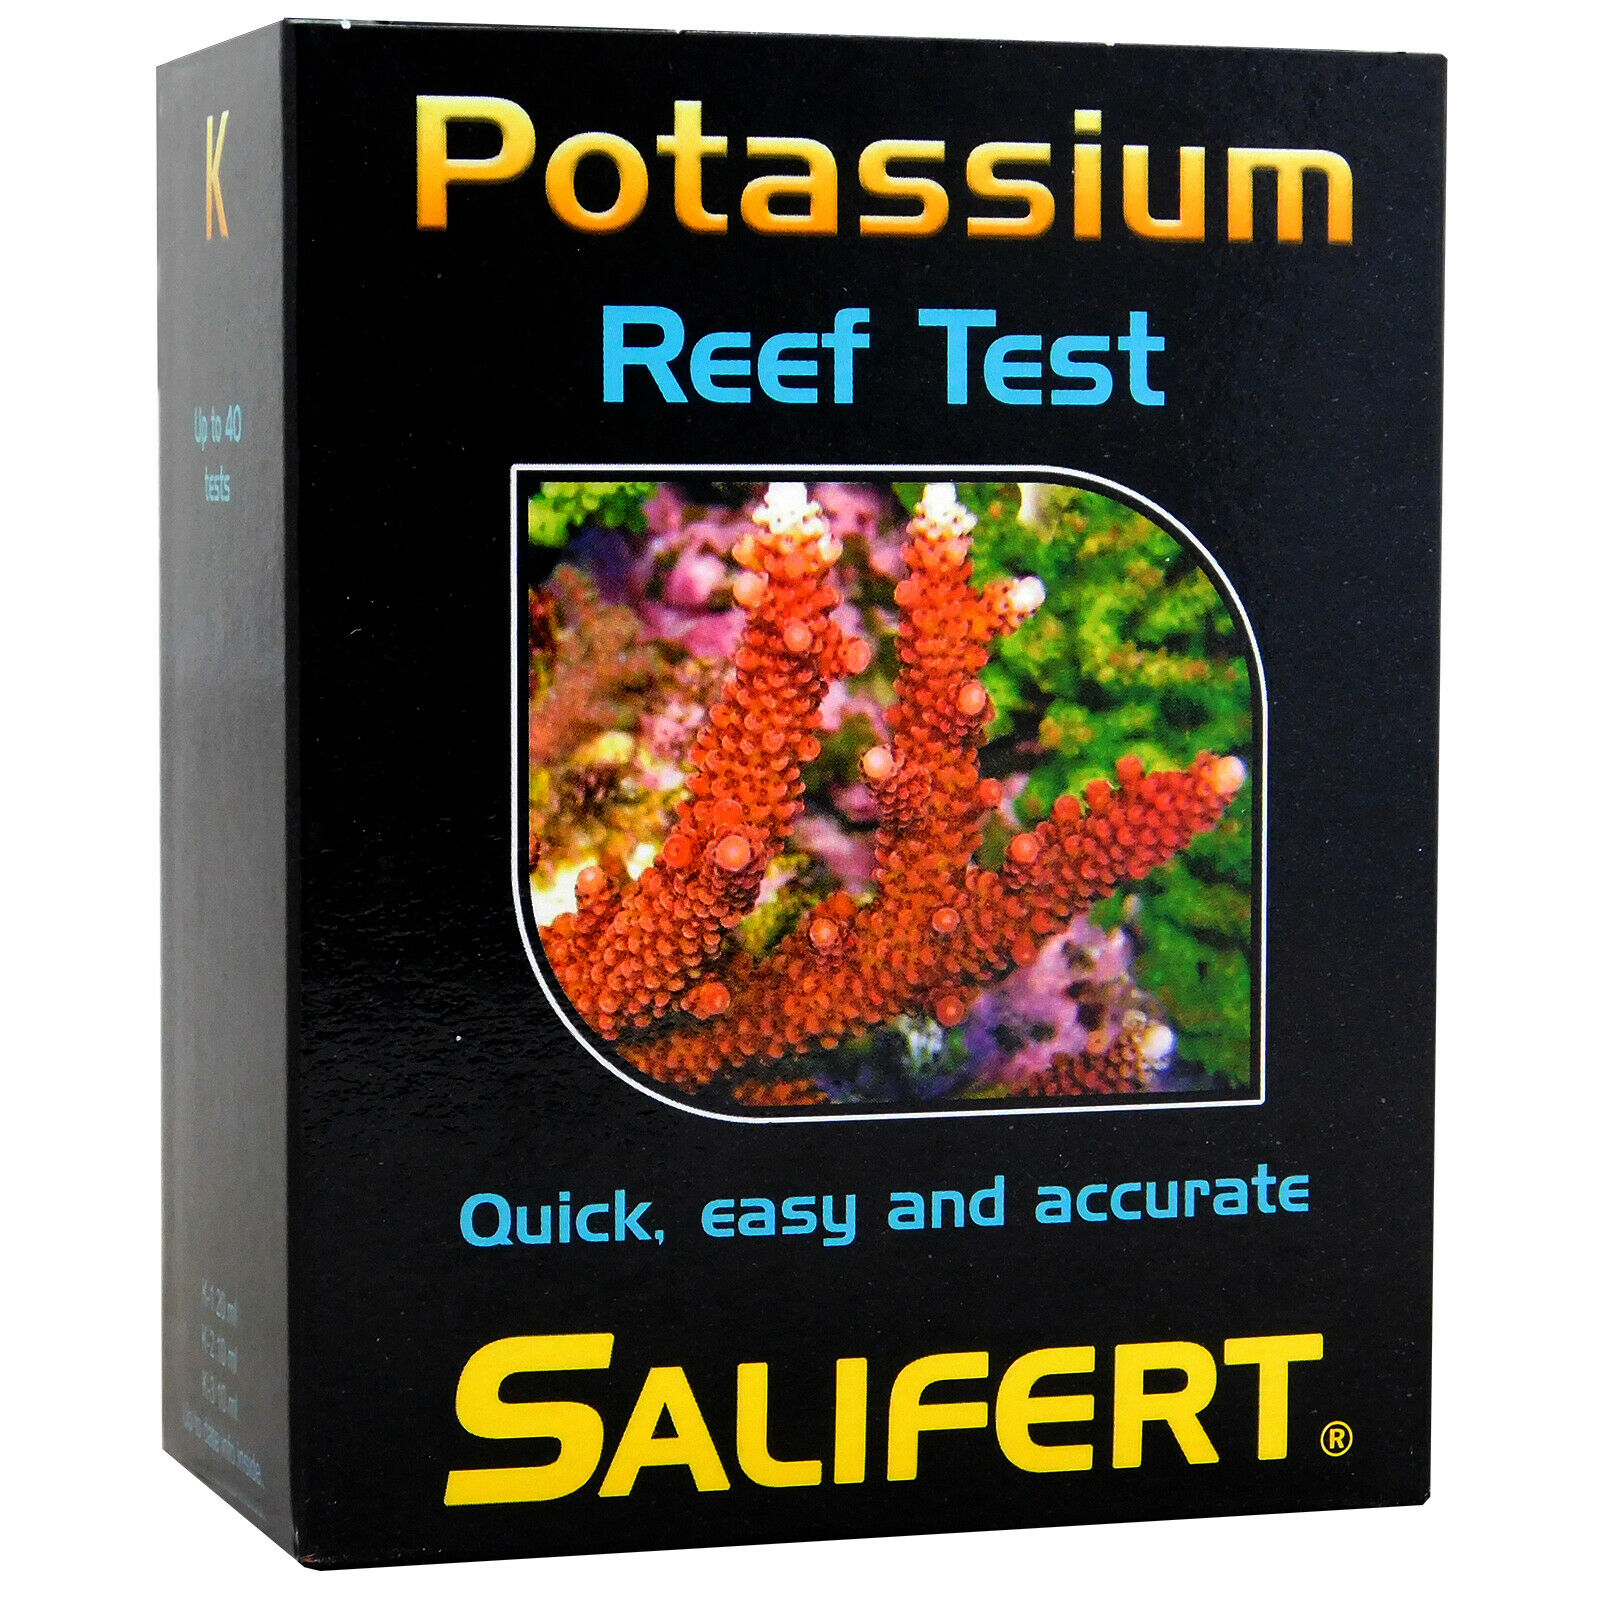 Salifert Potassium K Reef Test Kit Up To 40 Tests Marine Fish Tank Aquarium